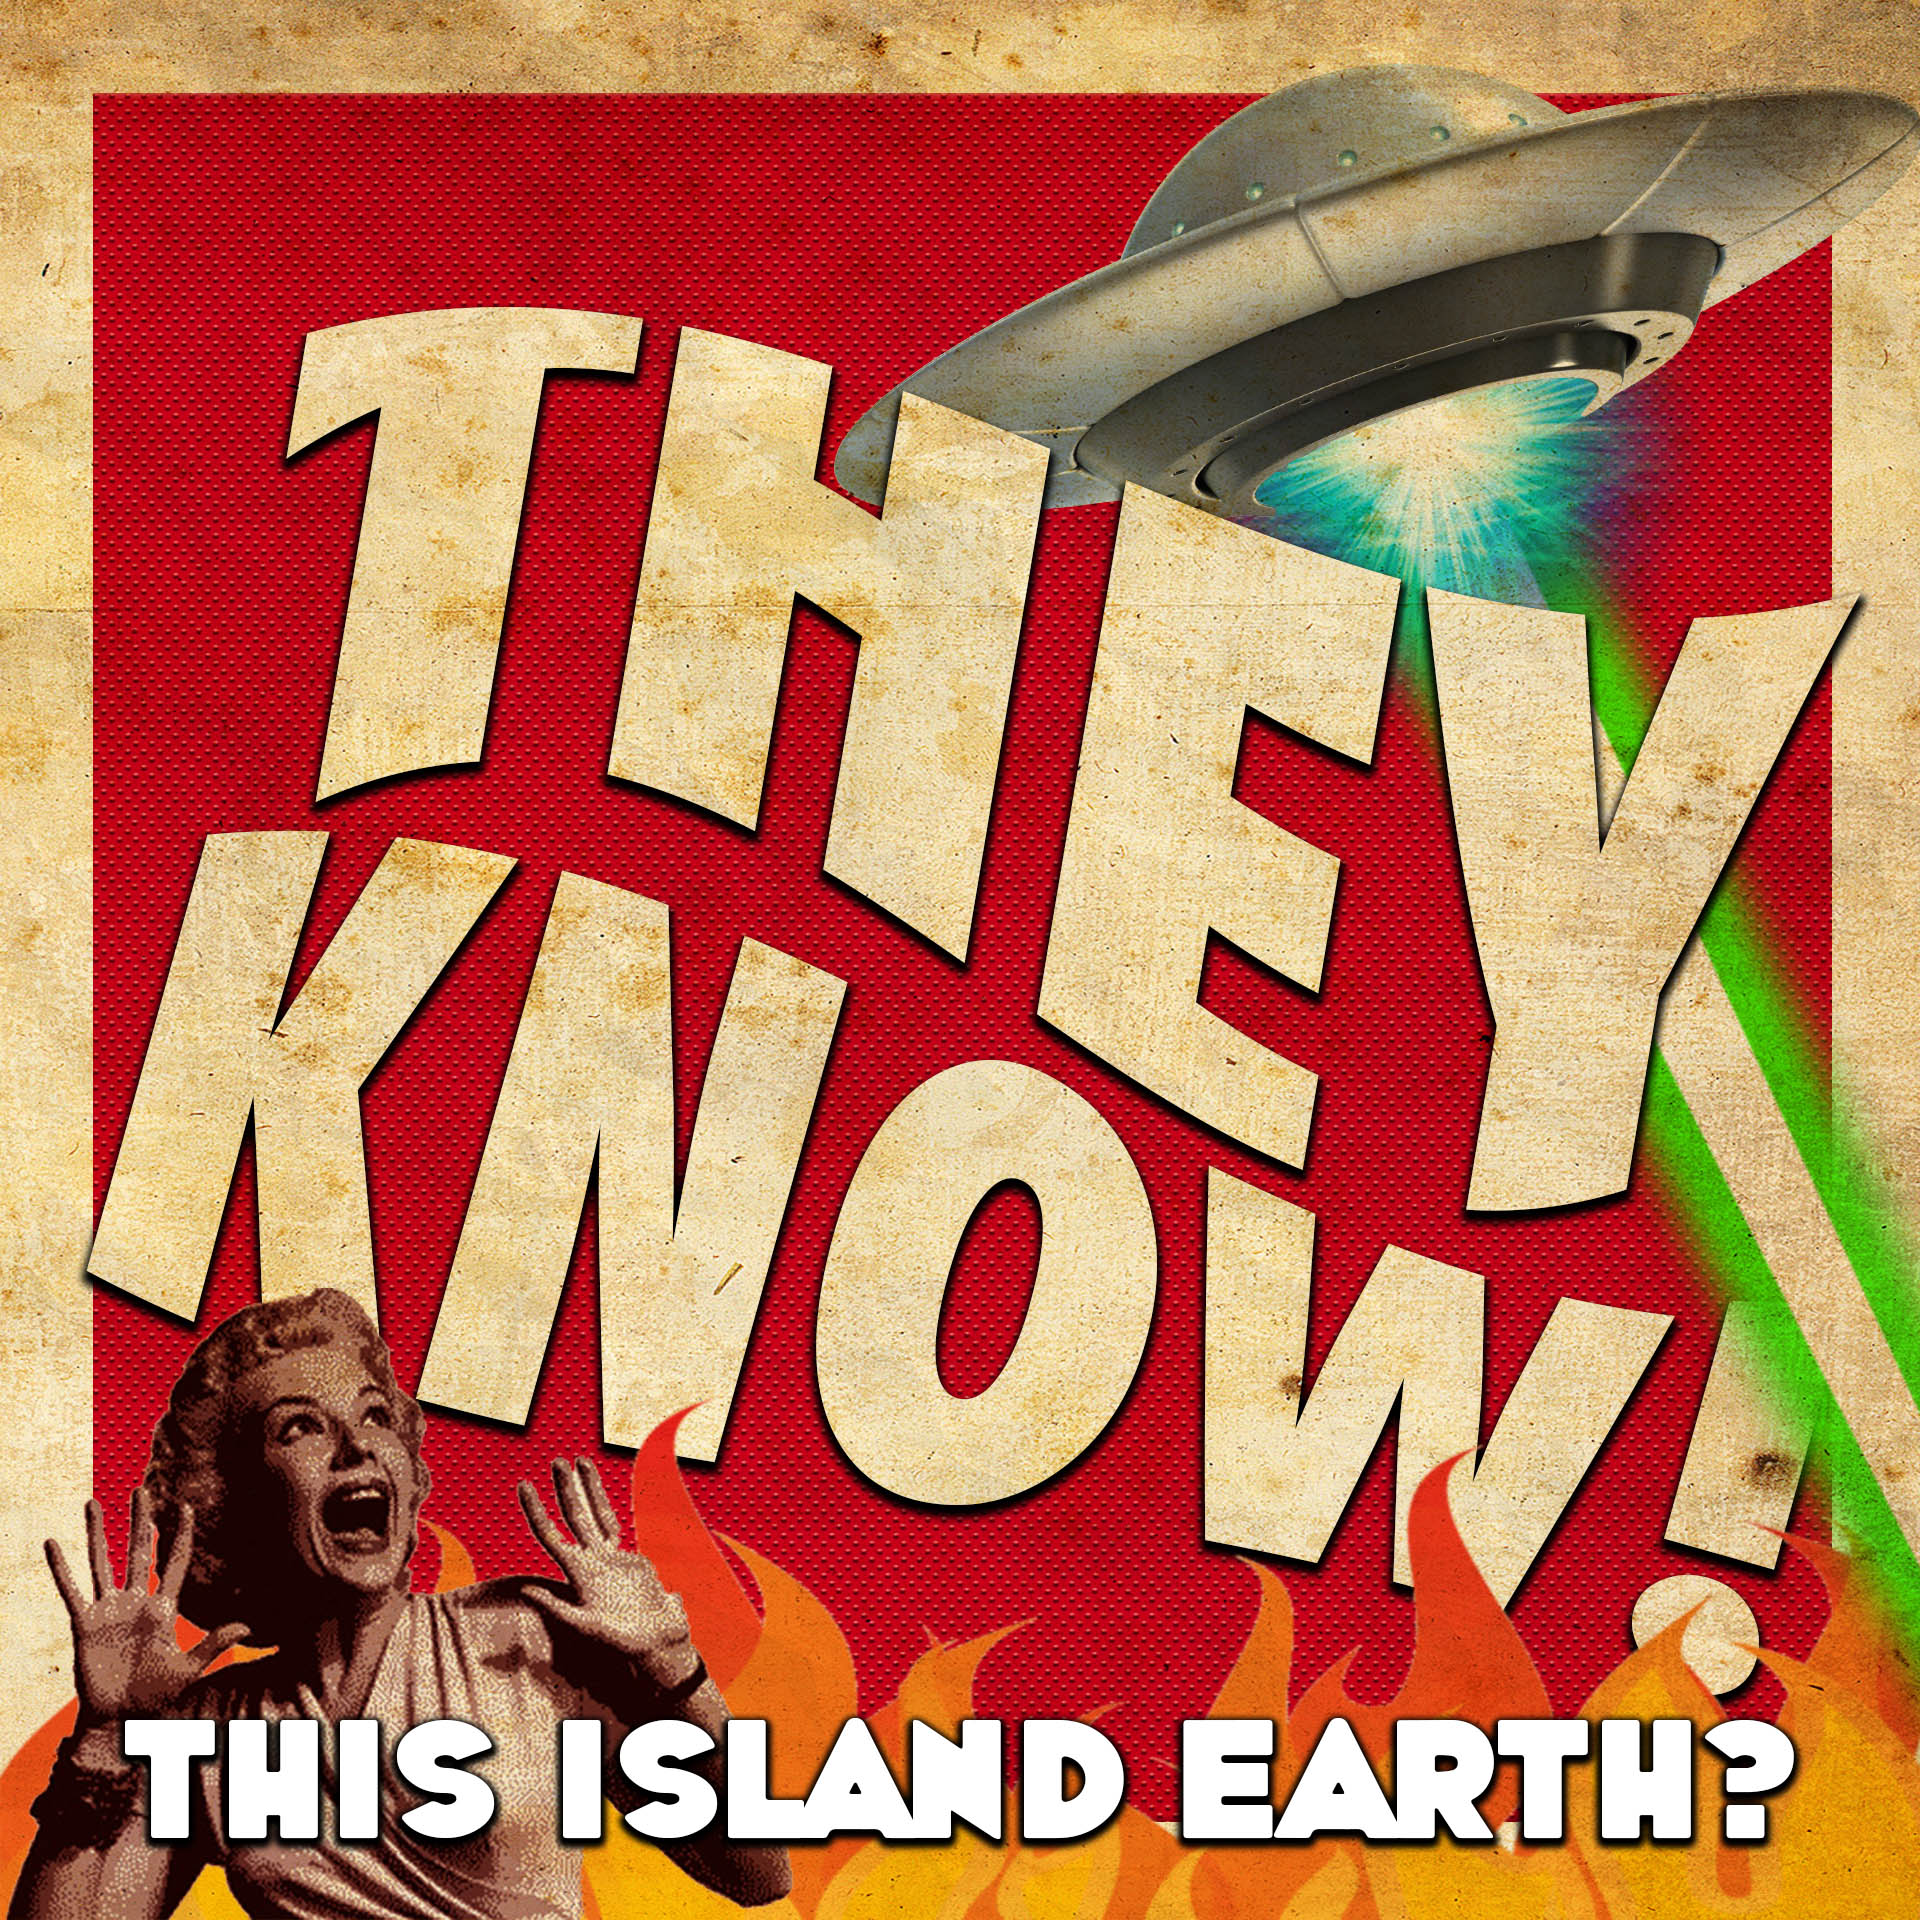 THEY KNOW! 001 | THIS ISLAND EARTH?